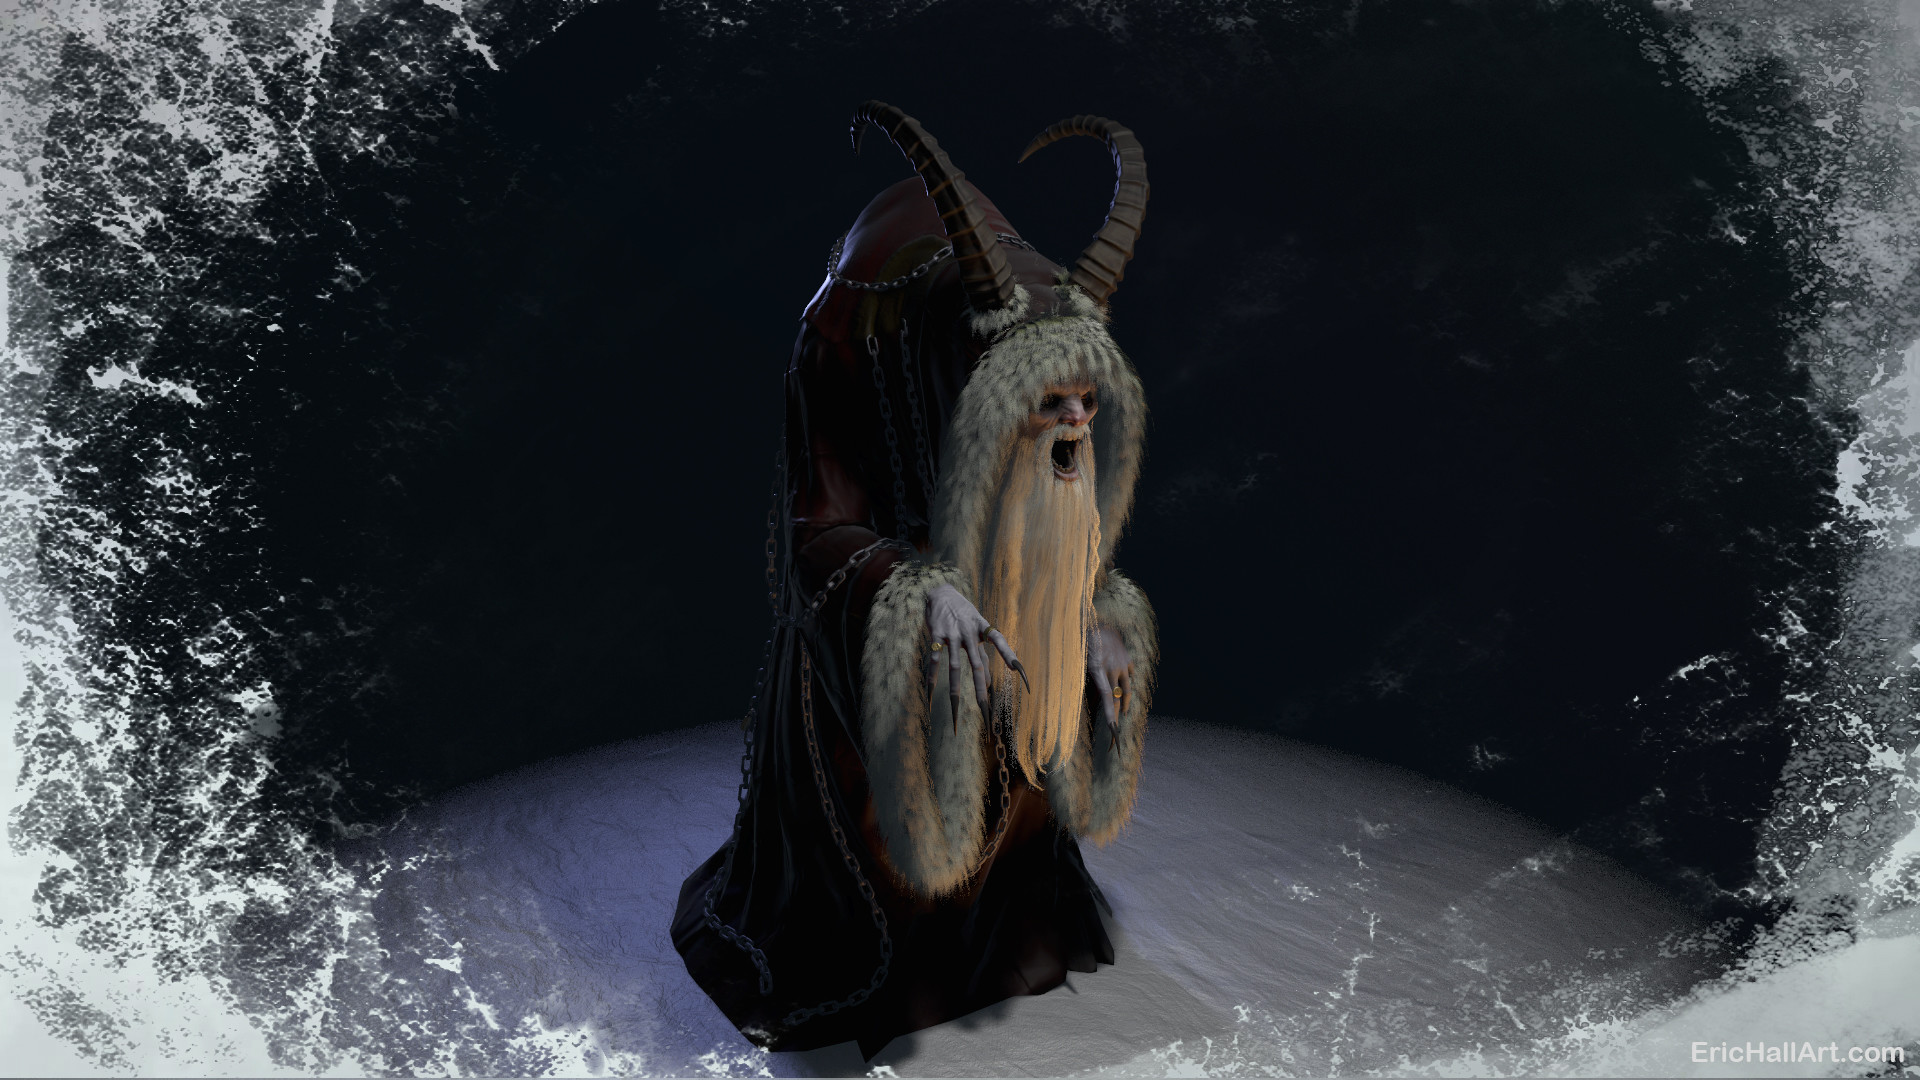 Eric hall krampus2